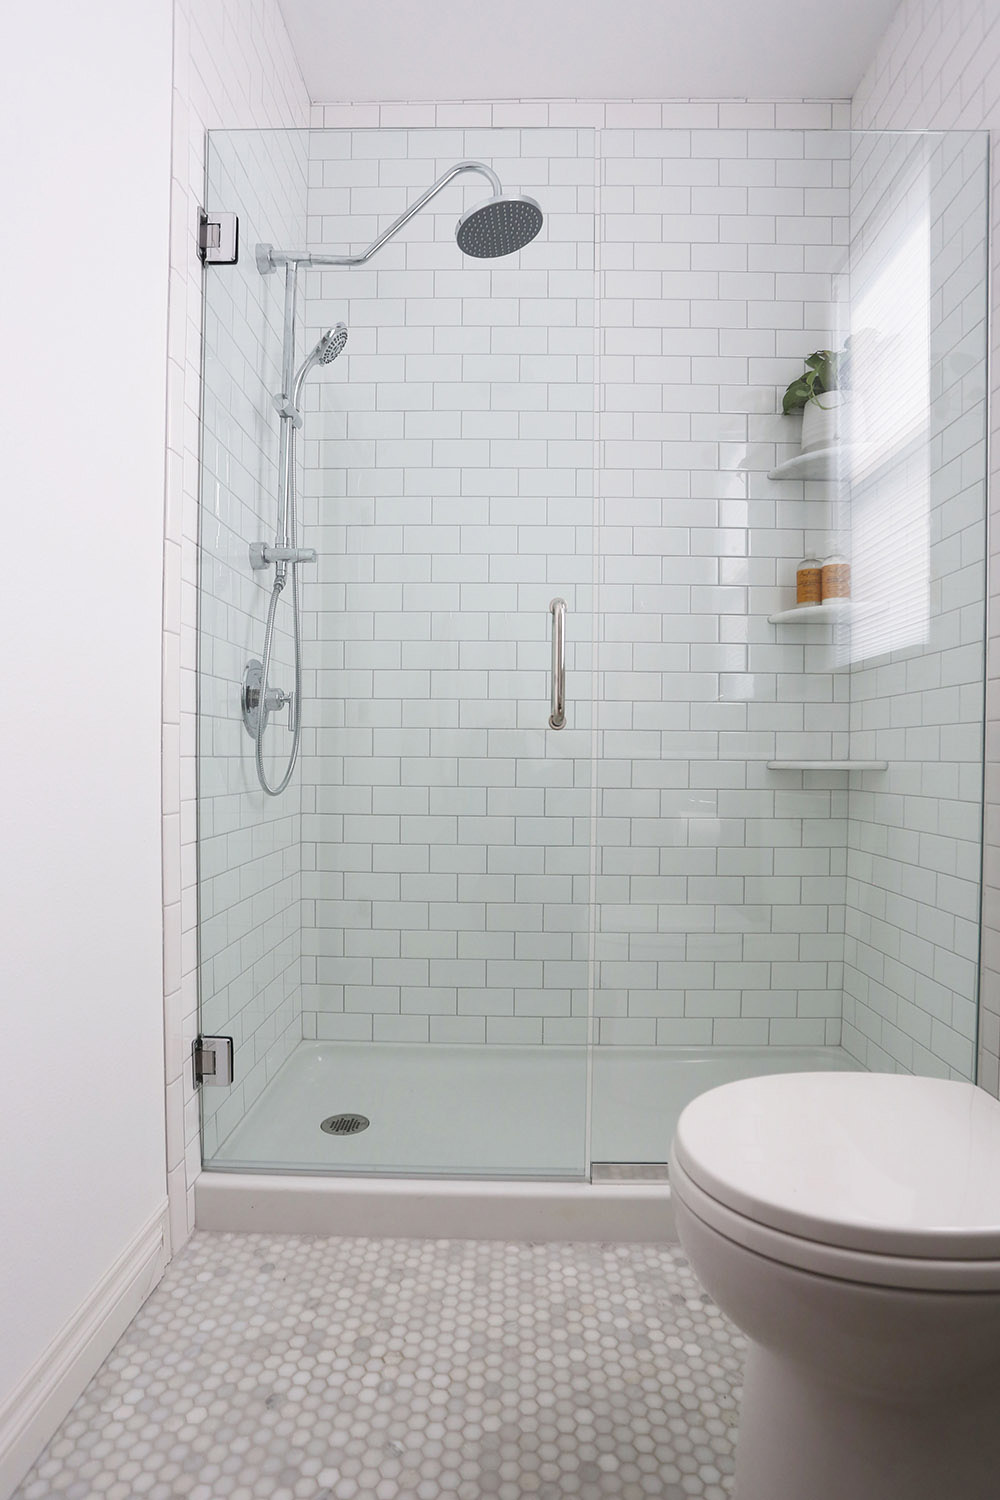 A walk-in shower with white subway tile walls and a glass door.